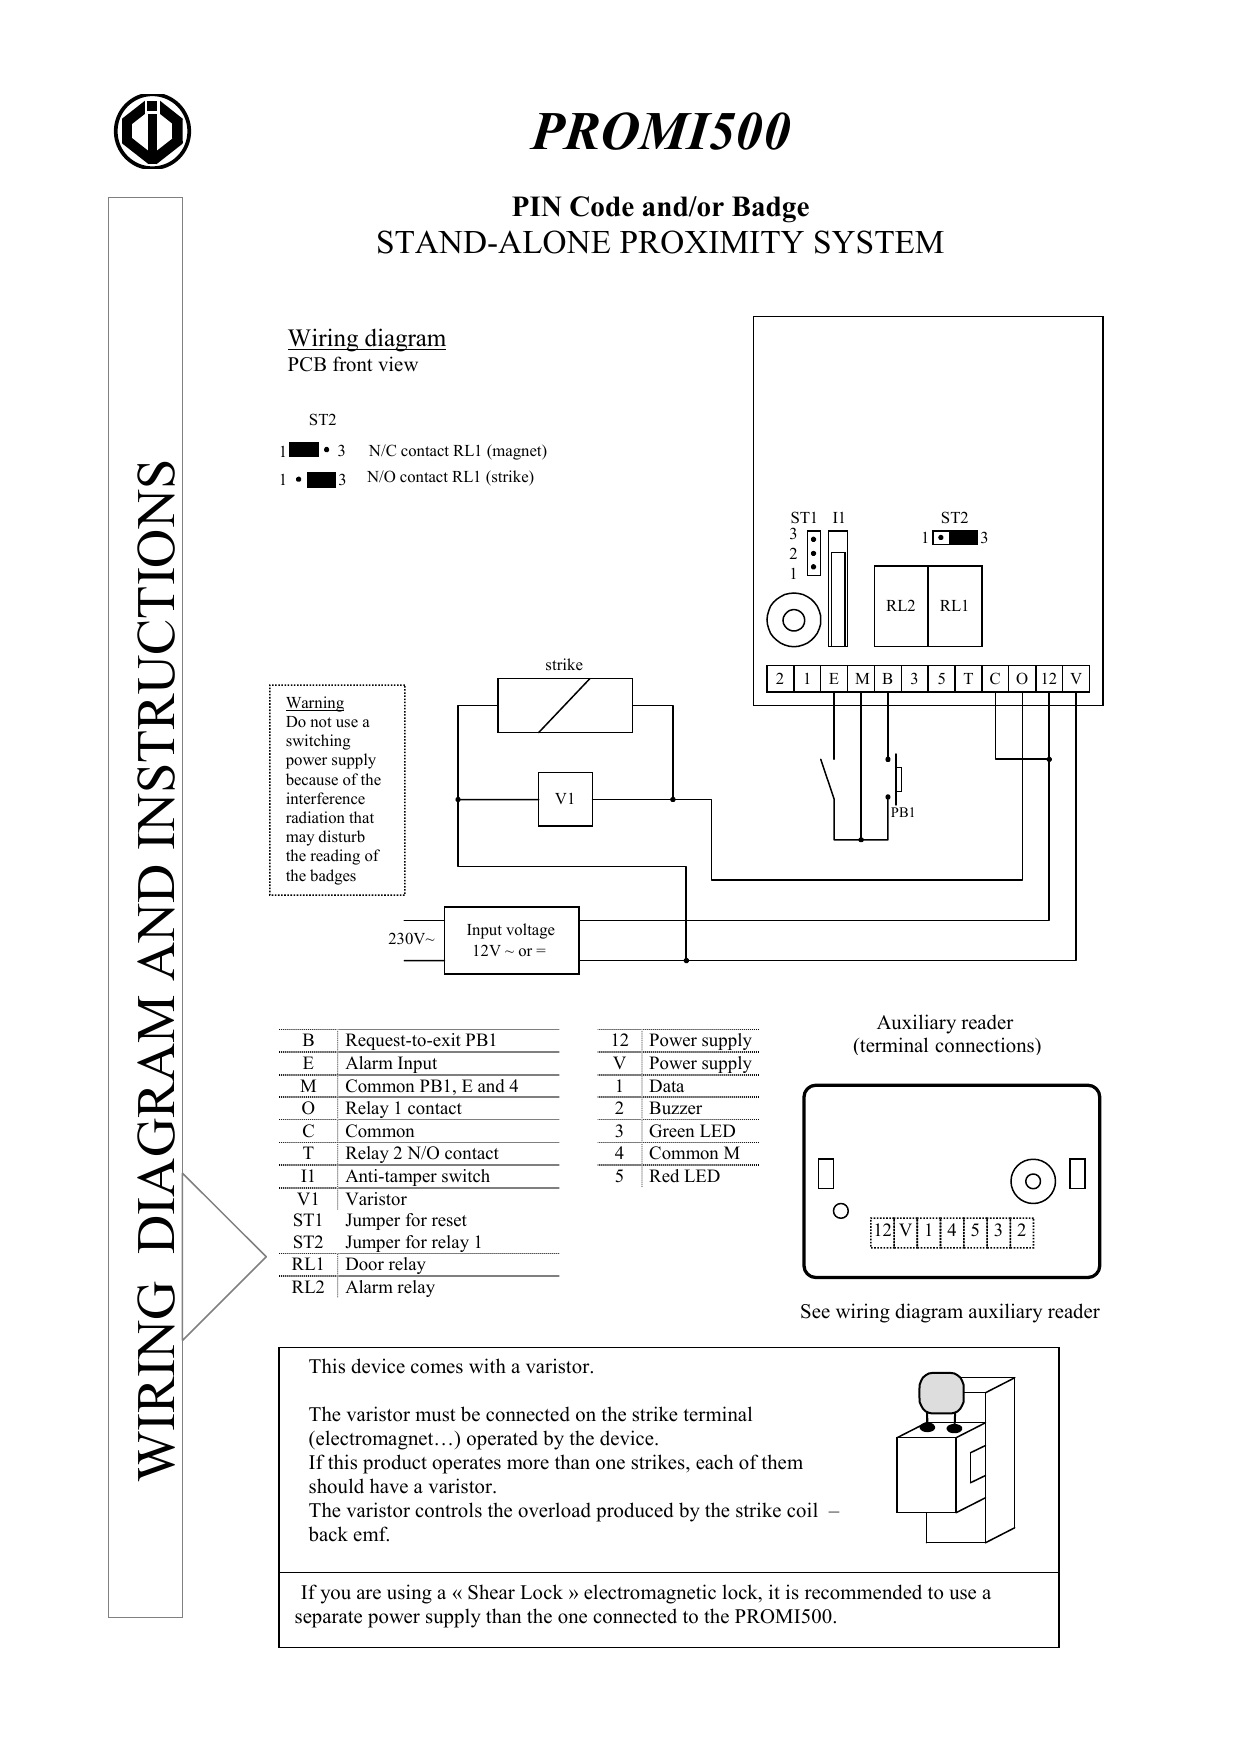 hight resolution of promi500 pin code and or badge stand alone proximity system wiring diagram pcb front view wiring diagram and instructions st2 1 1 3 n c contact rl1 magnet